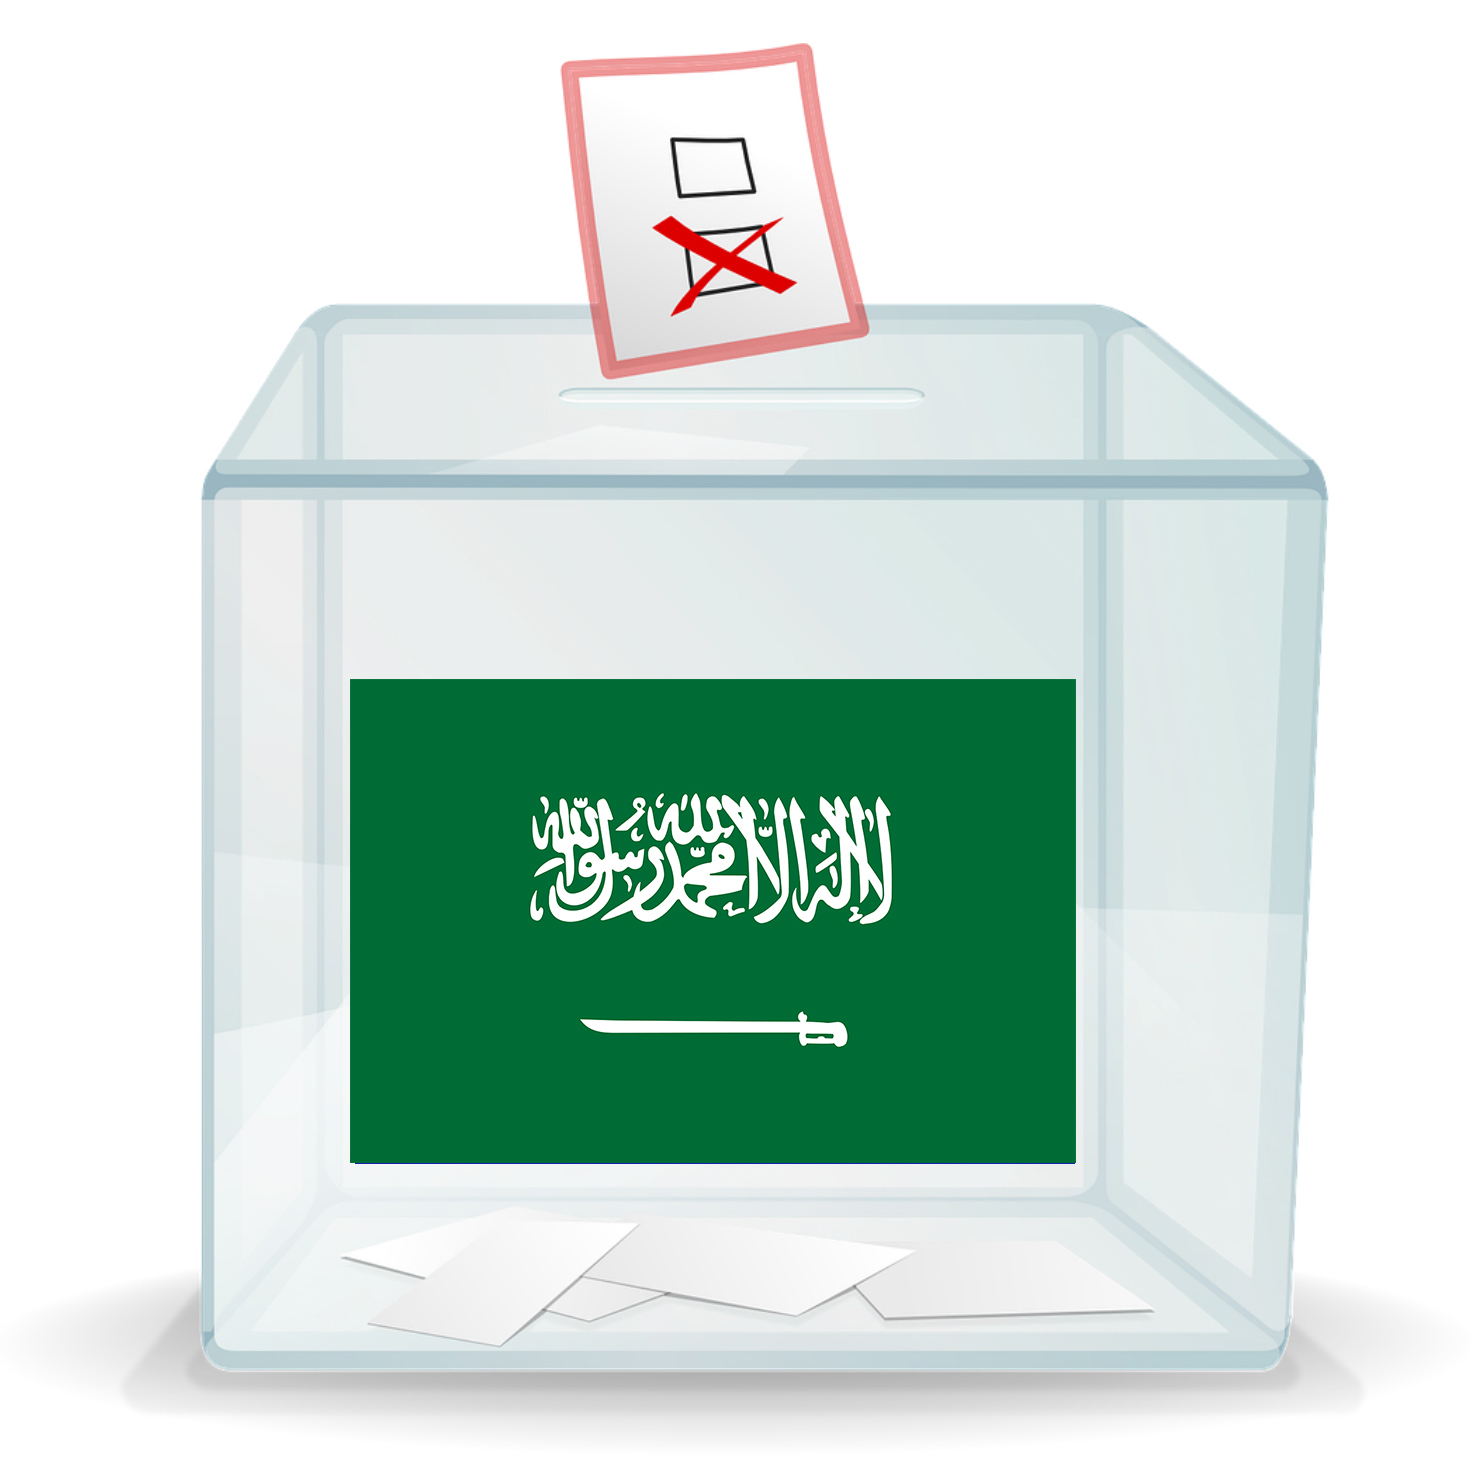 Ballot box with a Saudi Arabia flag on the front